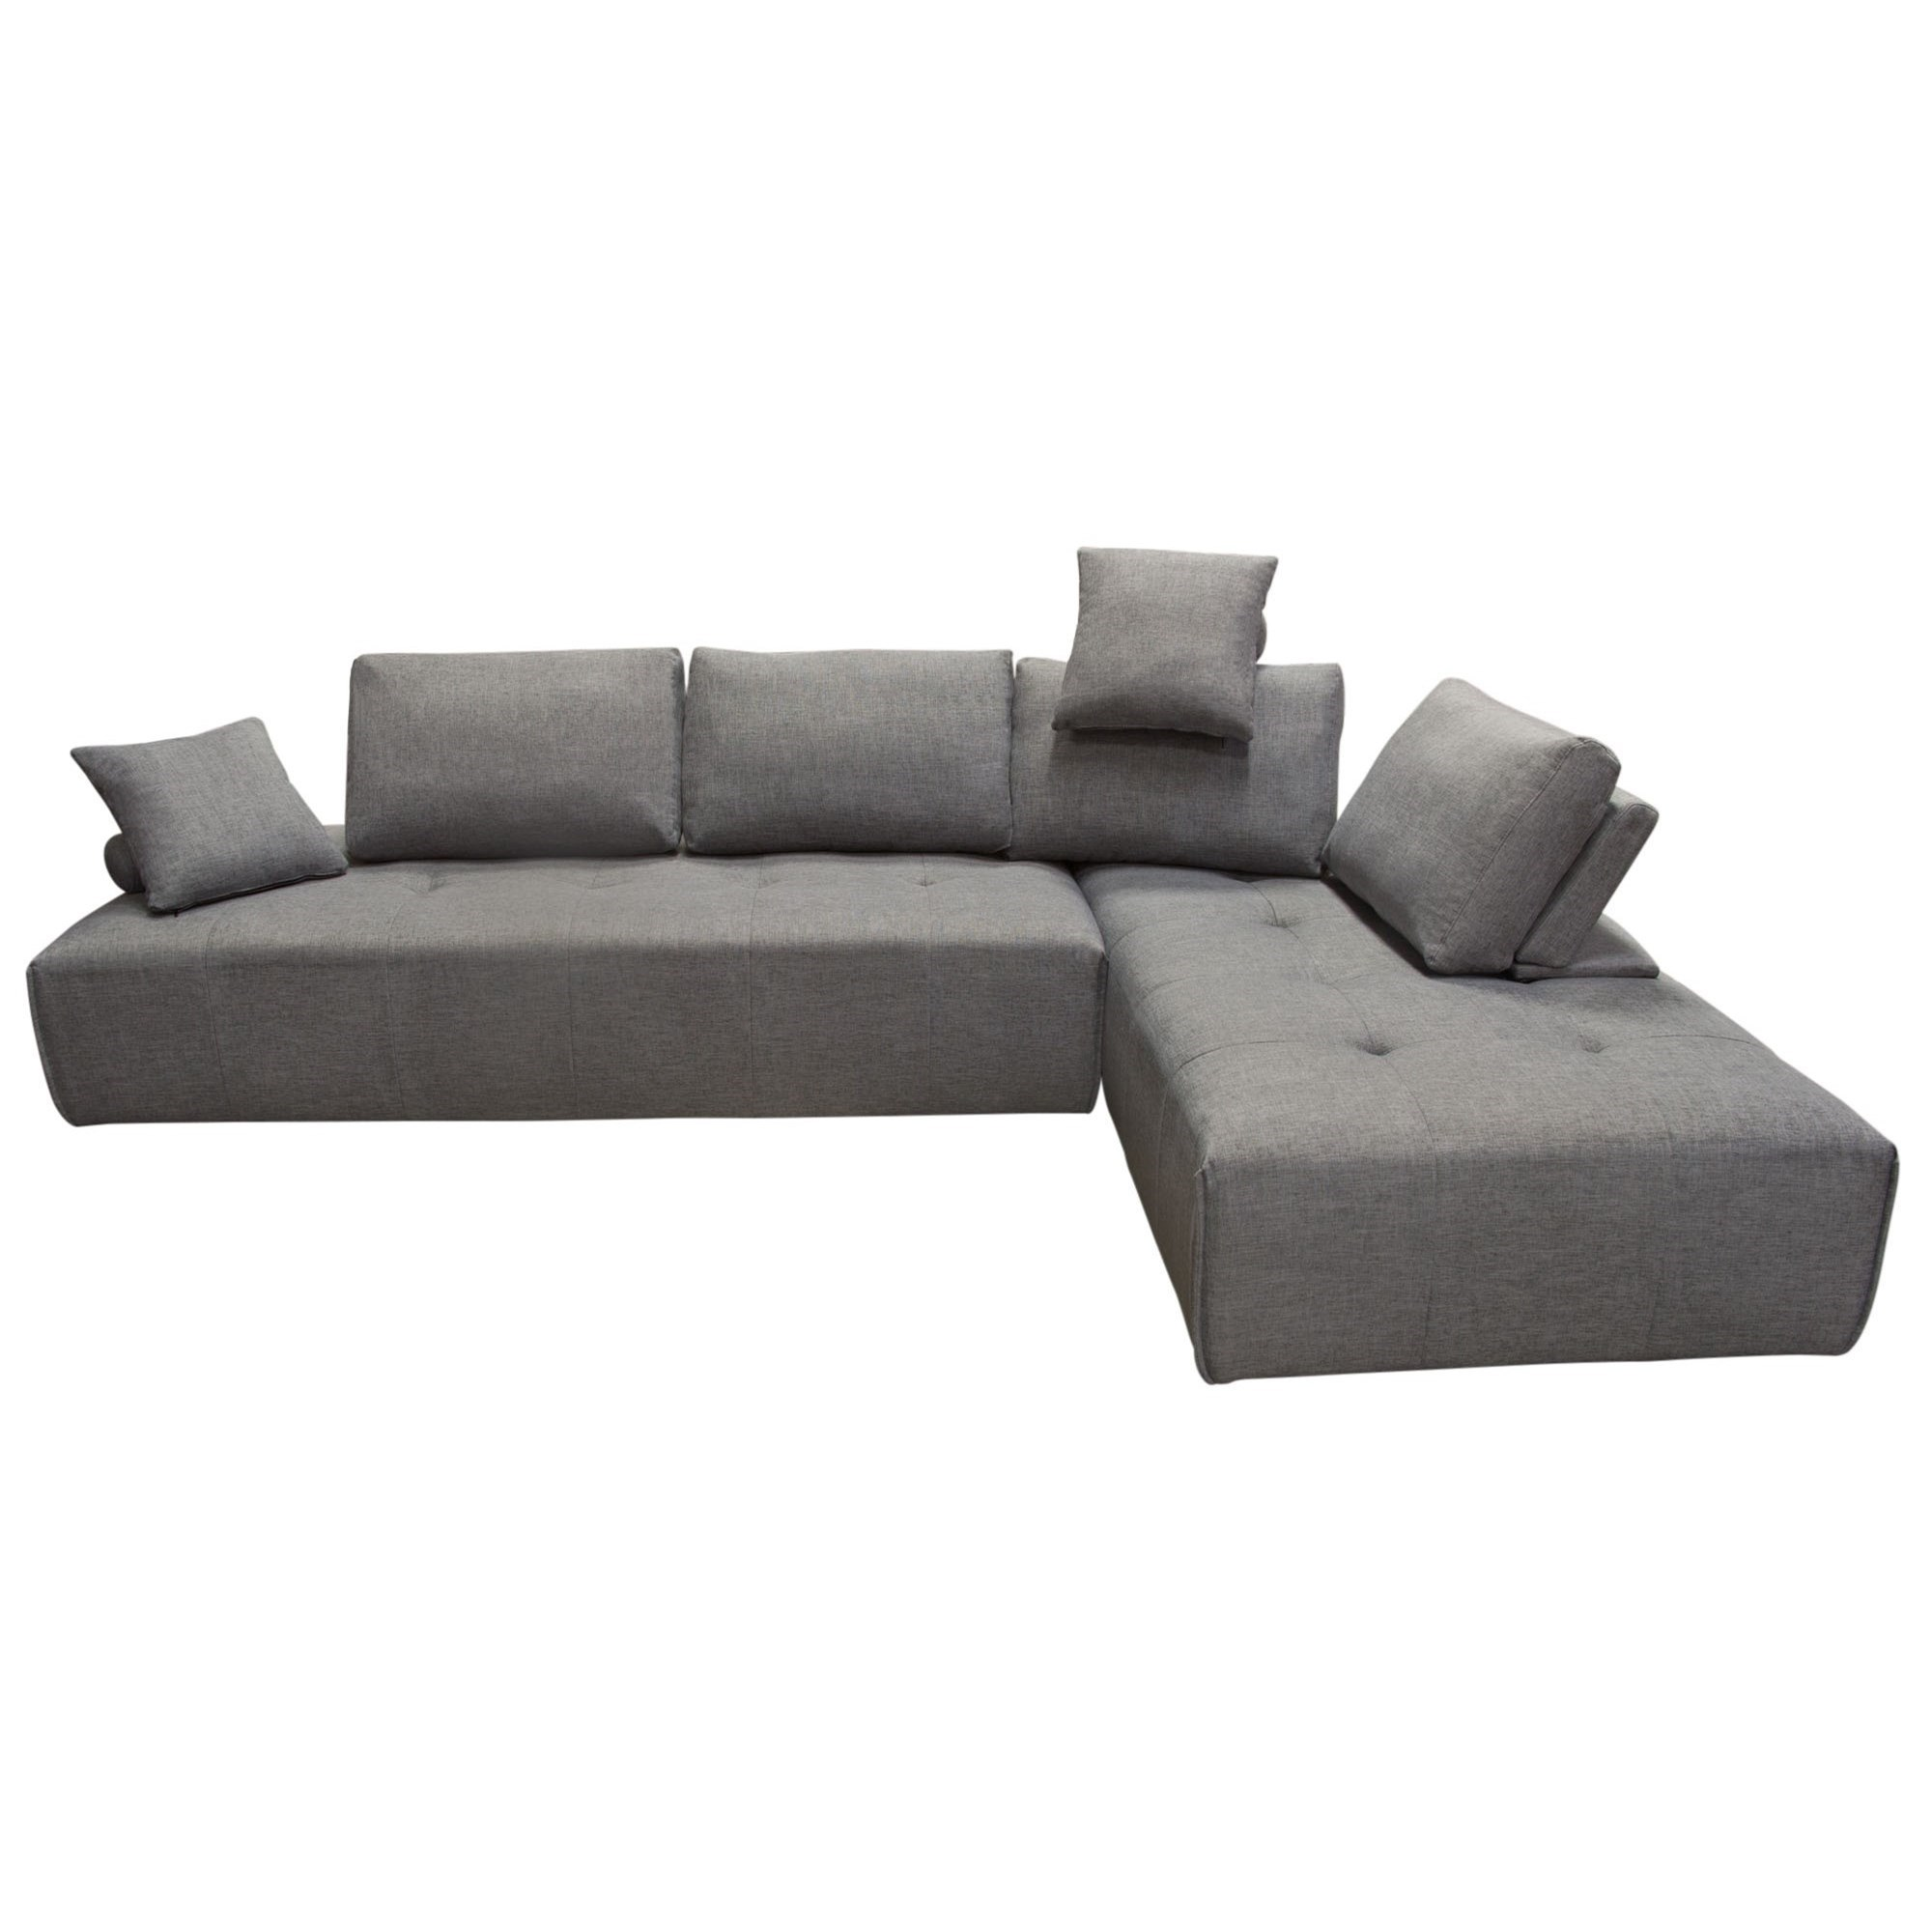 Cloud Sectional by Diamond Sofa at HomeWorld Furniture